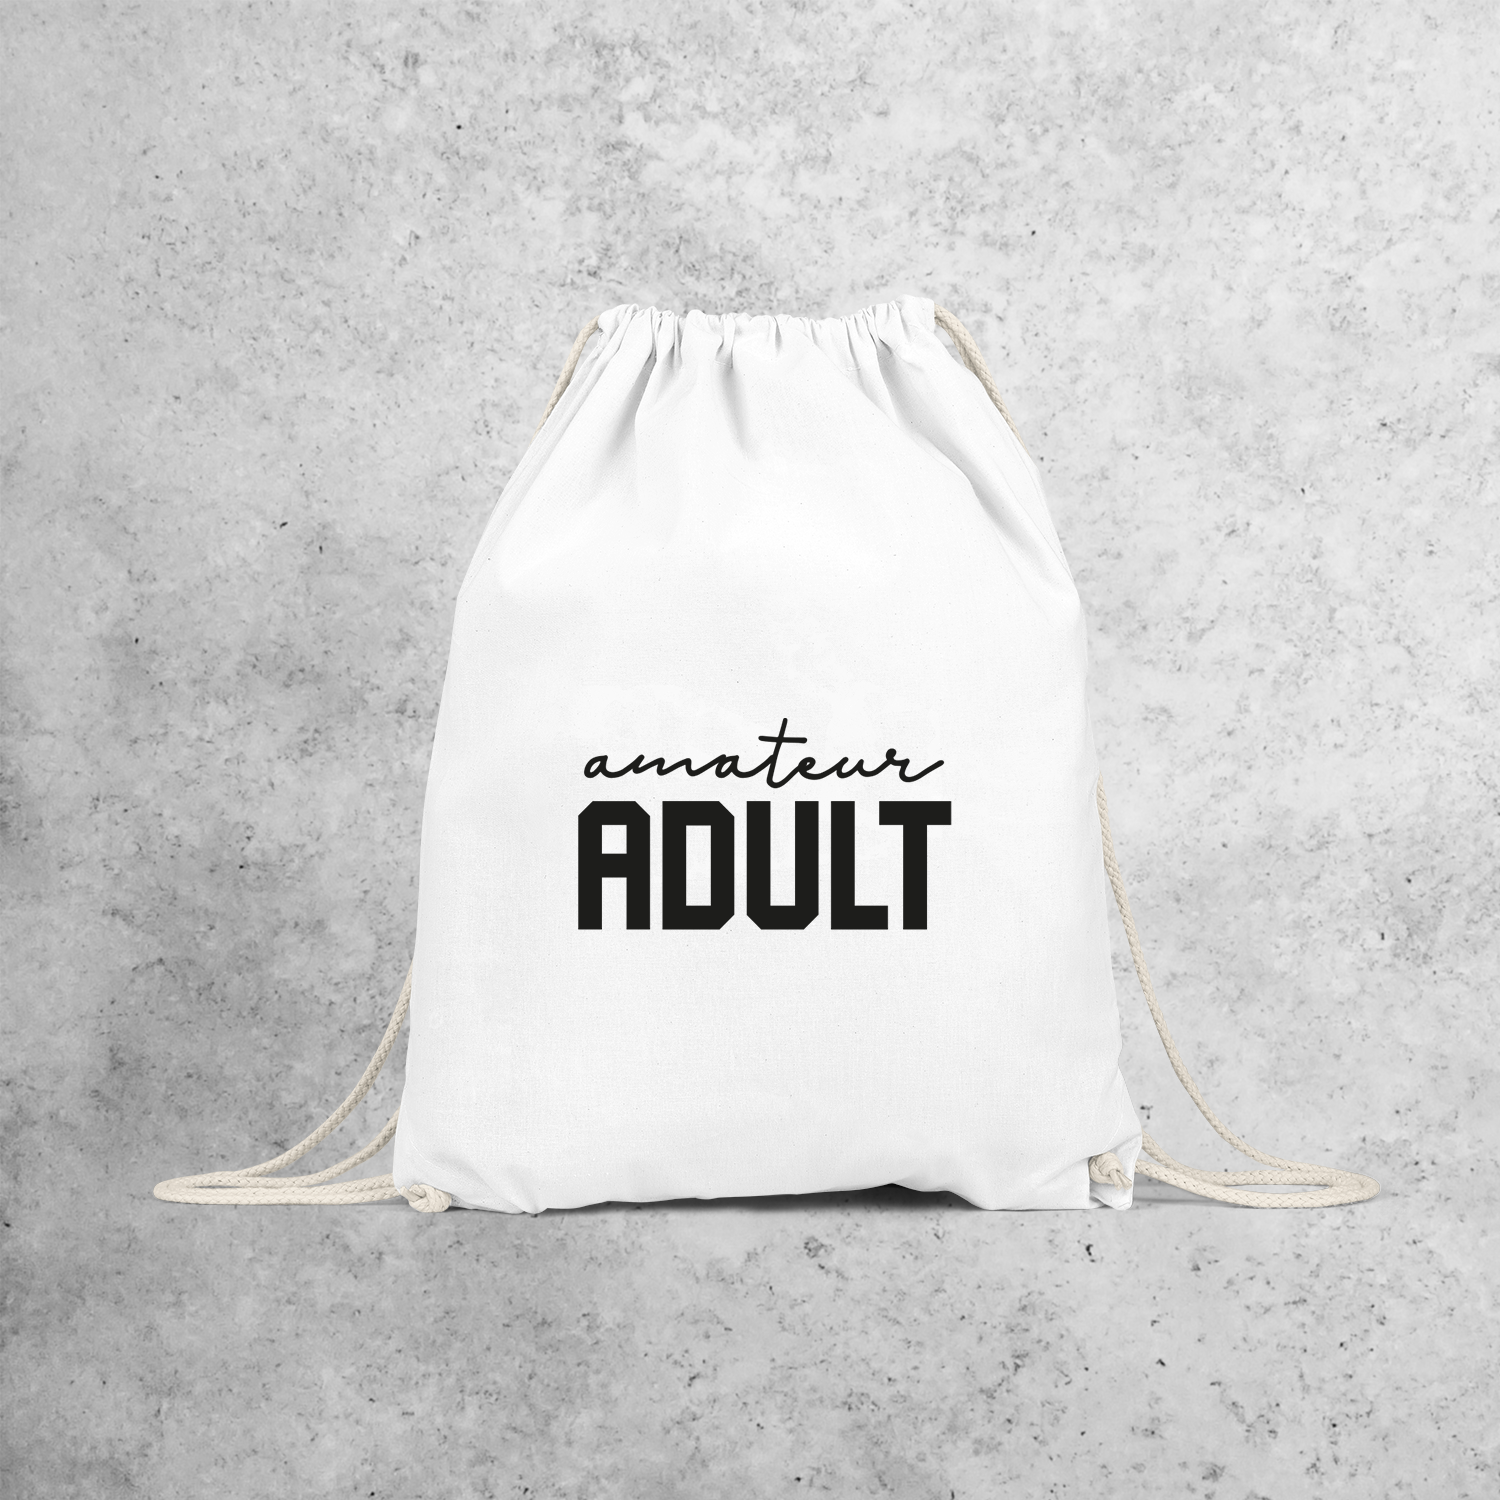 'Amateur adult' backpack